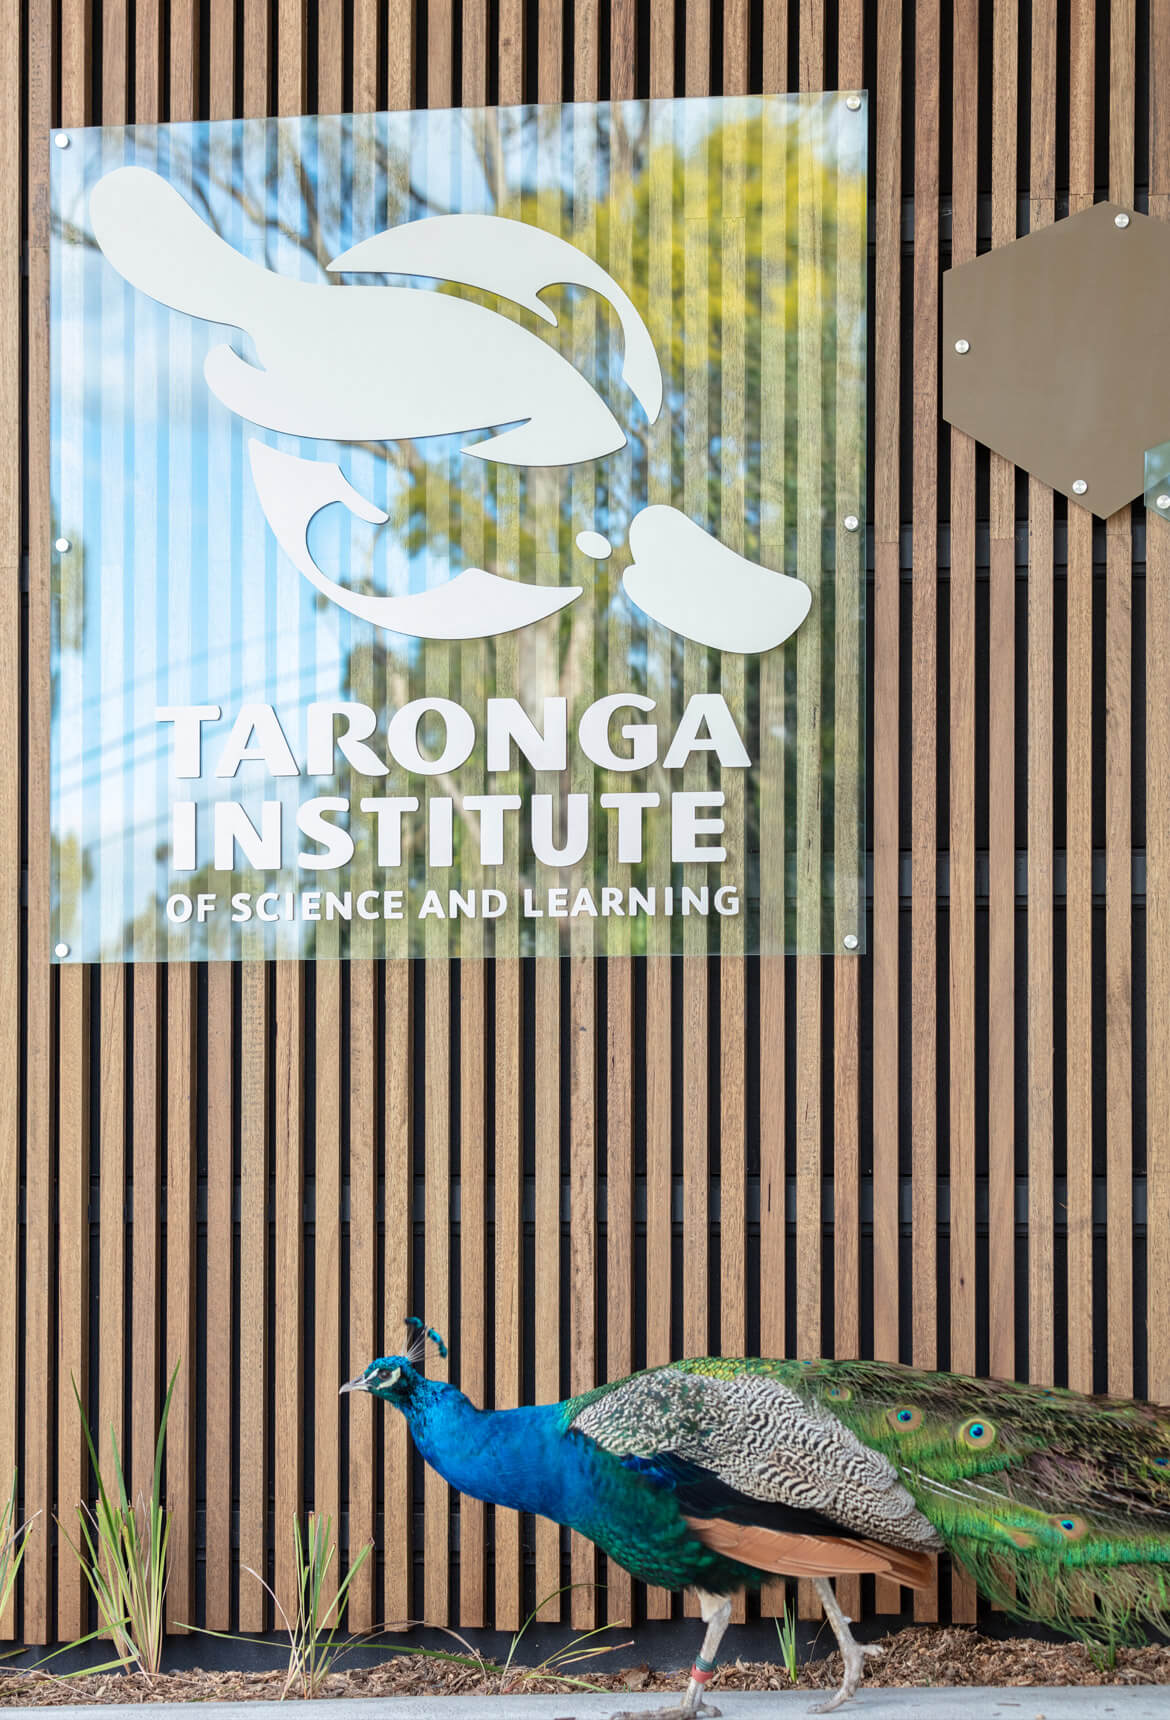 Taronga Zoo Institute of Science and Learning